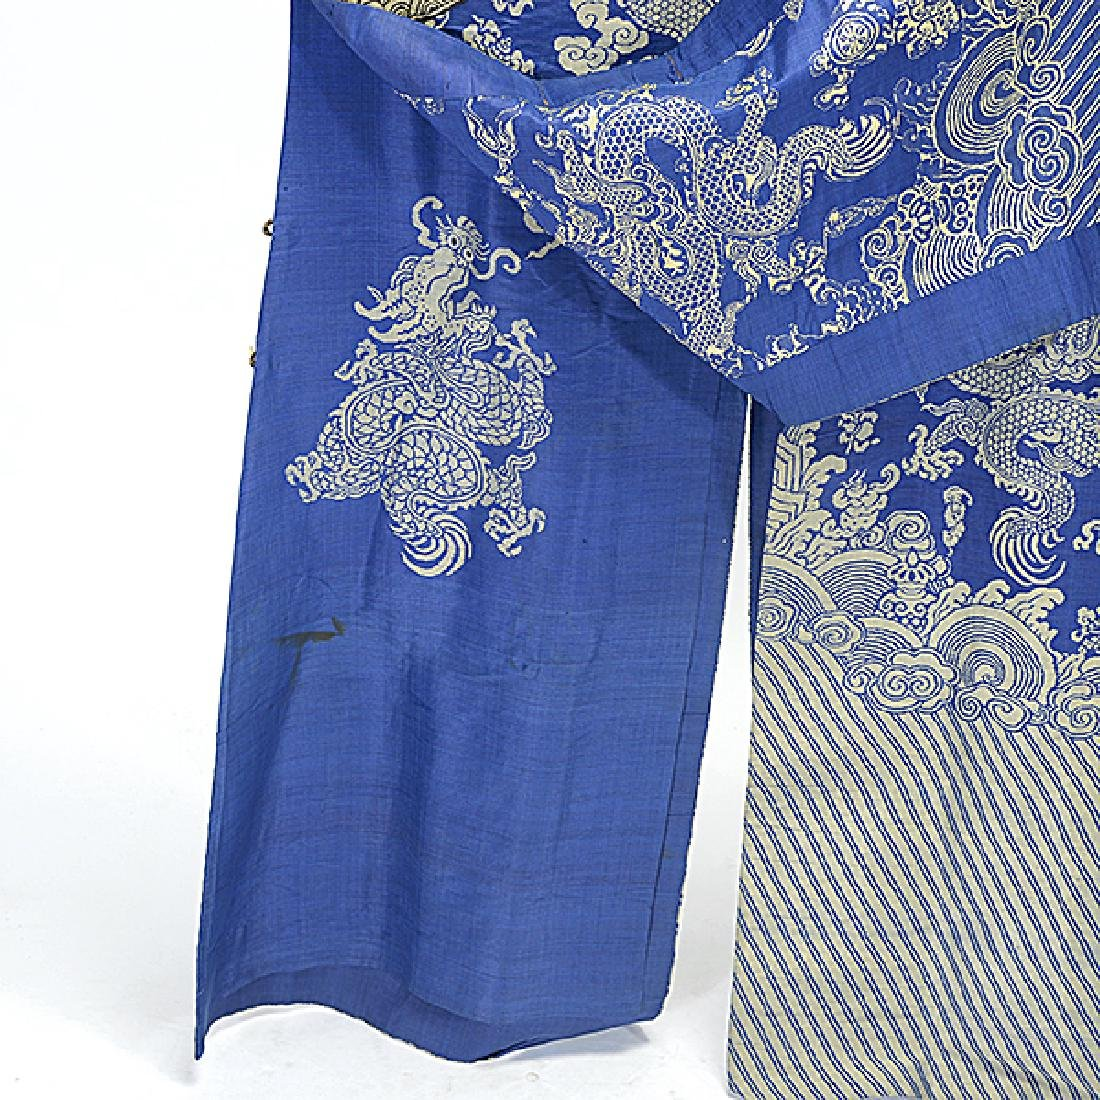 A Brocade Woven Blue Ground 'Dragon' Robe, Late 19th - 5